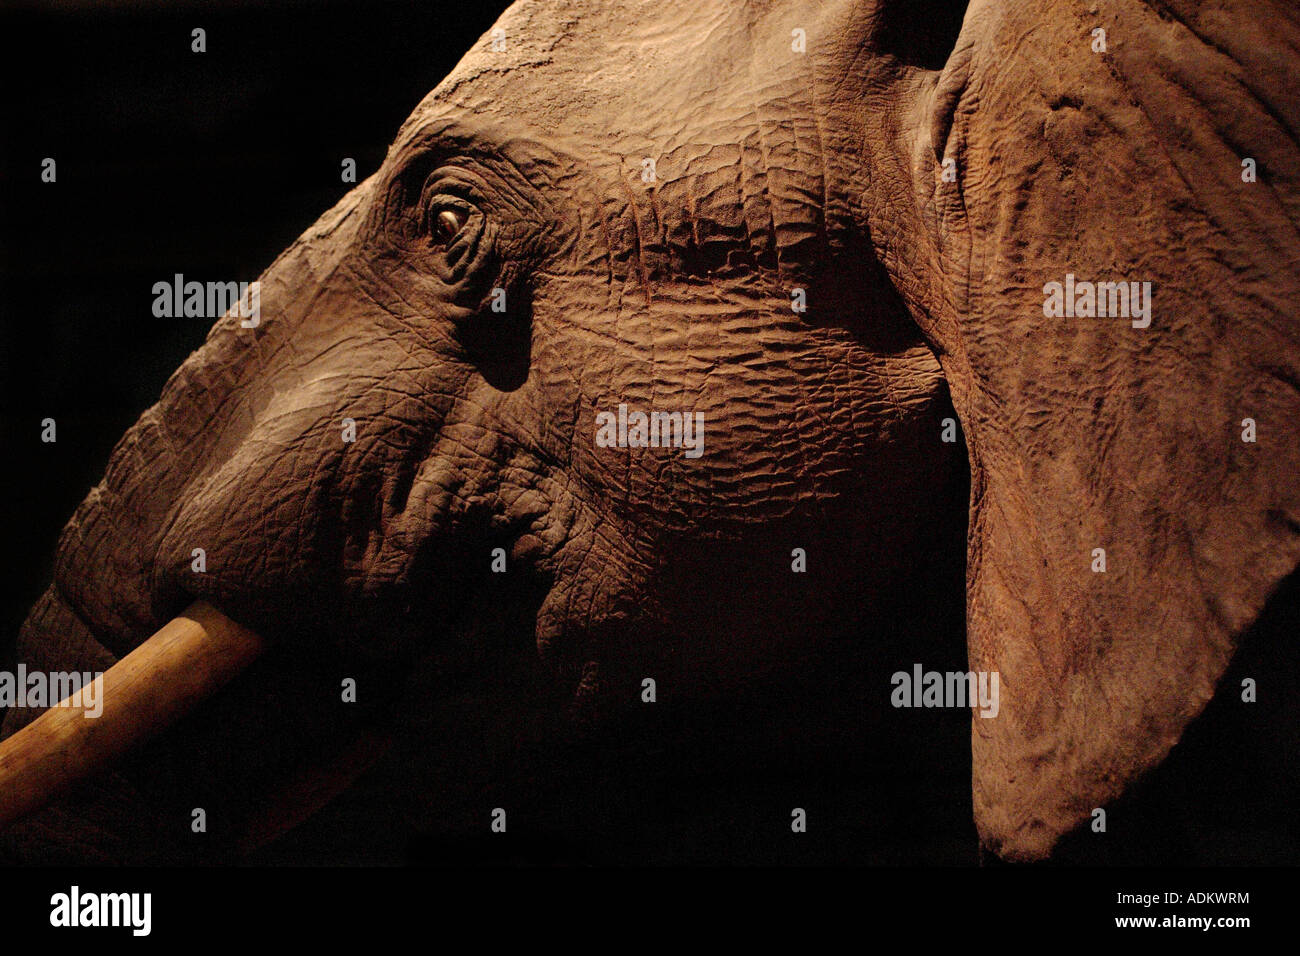 Elephant - Stock Image